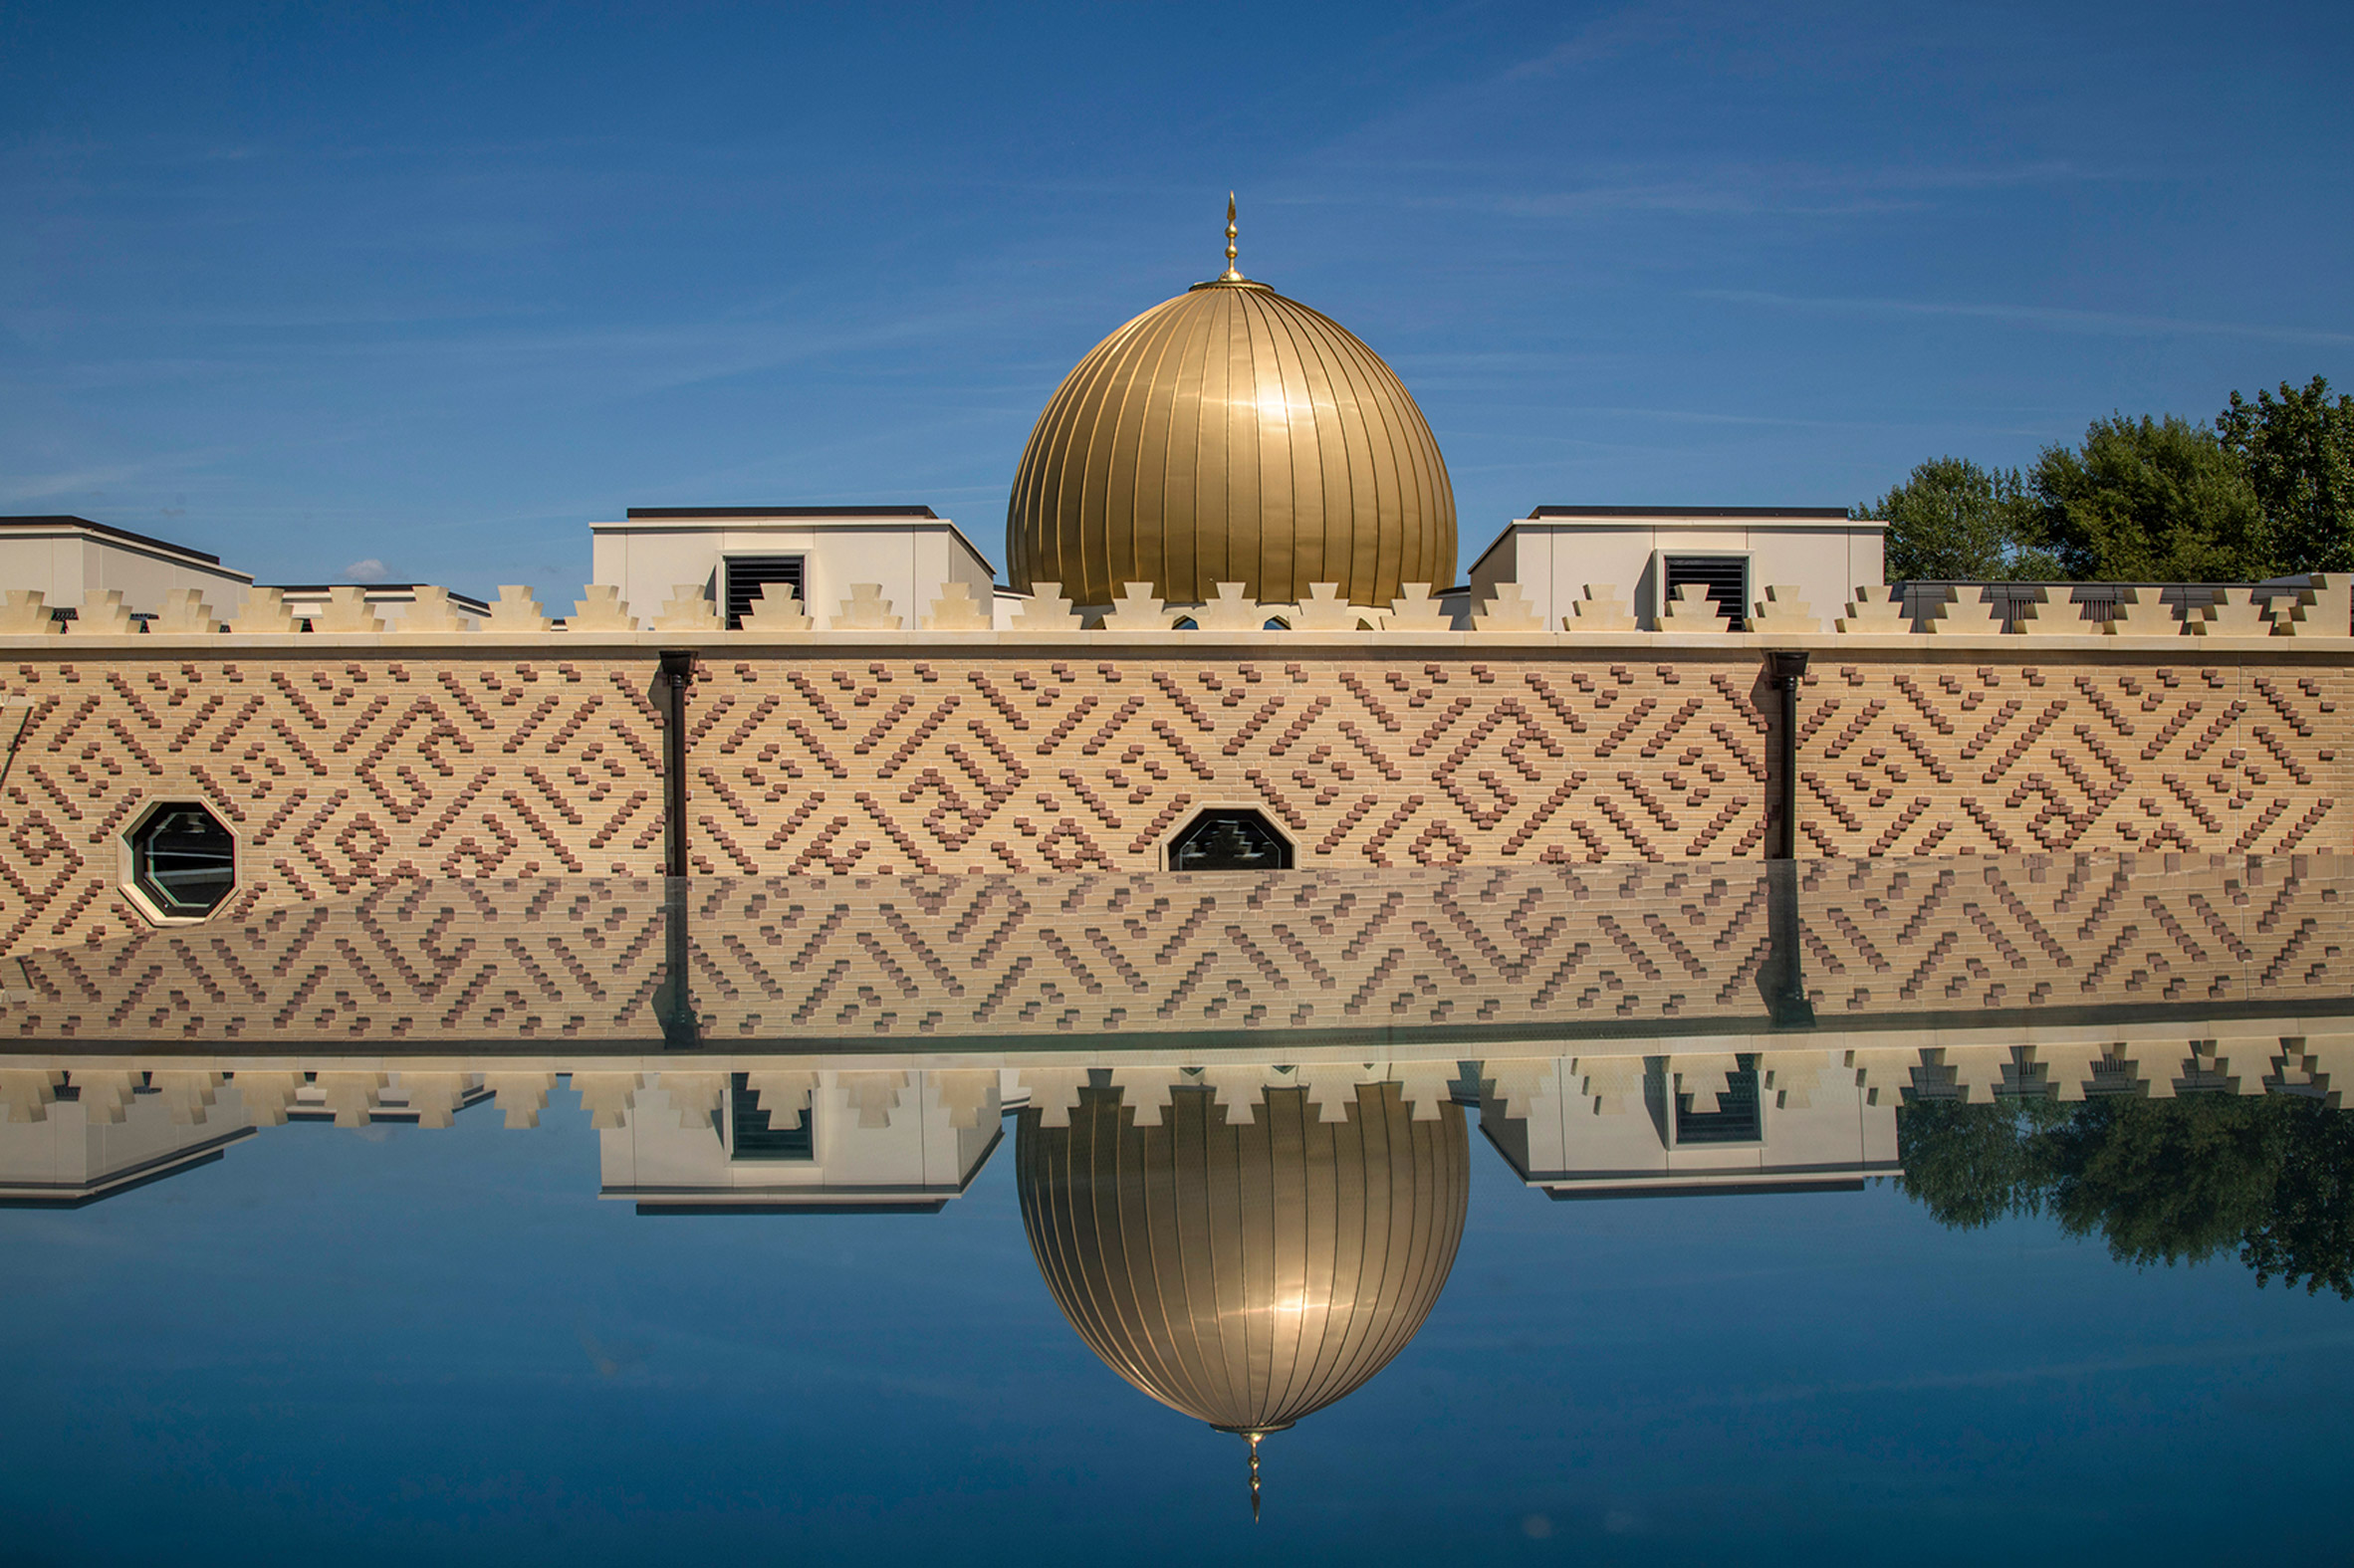 Exterior of Cambridge Central Mosque by Marks Barfield Architects